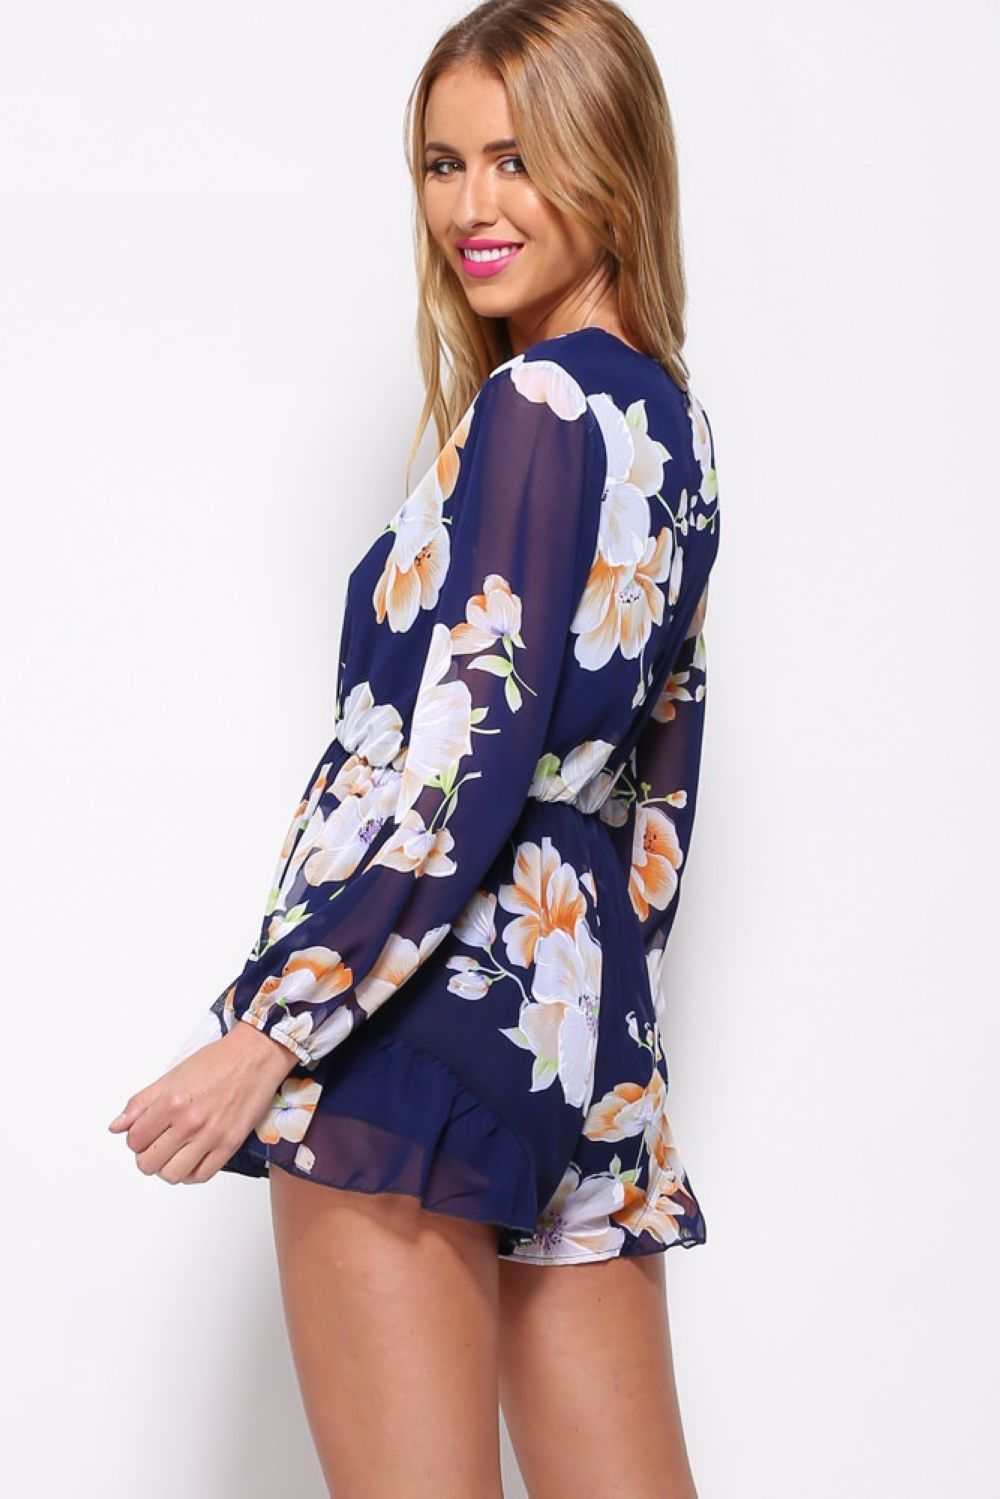 F2466 Summer  Sexy Blue Floral Print Loose Beach Romper Playsuit Jumpsuit Dress